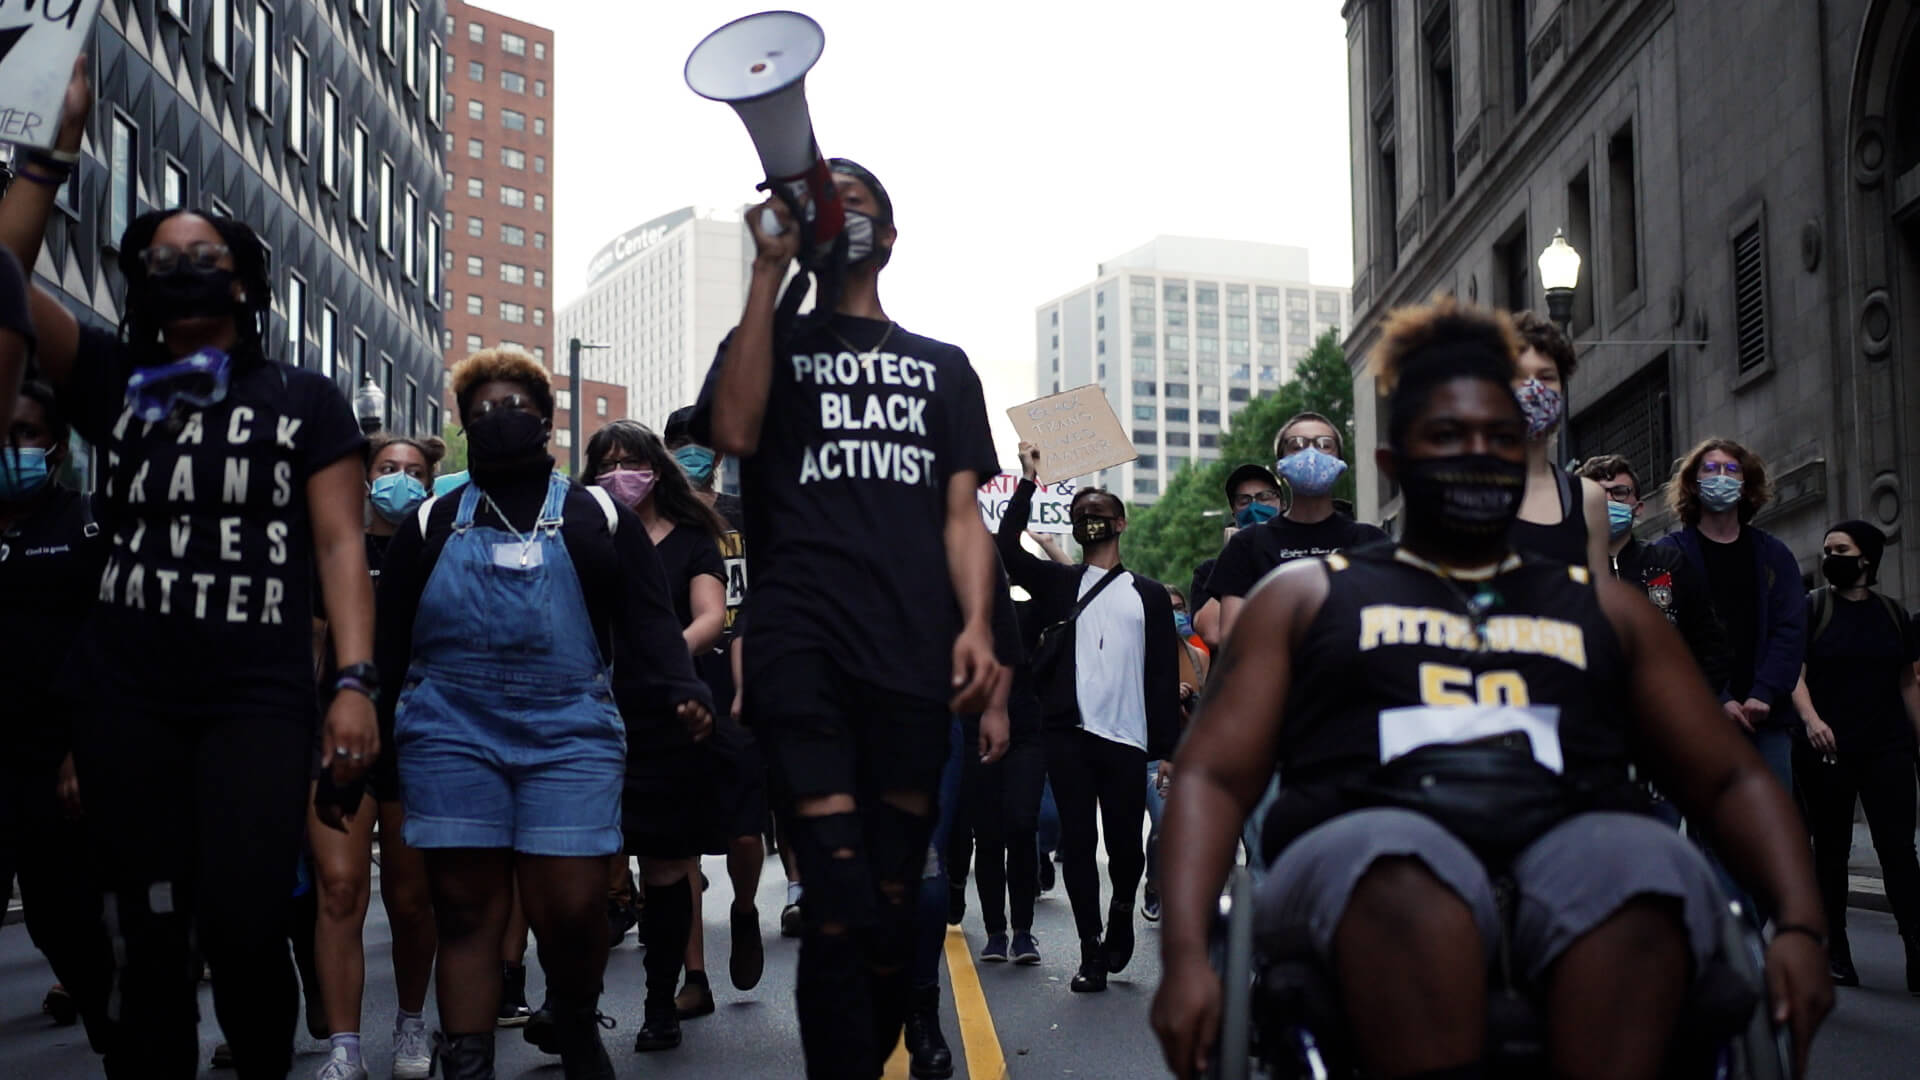 Pittsburgh activists walk down a downtown street.